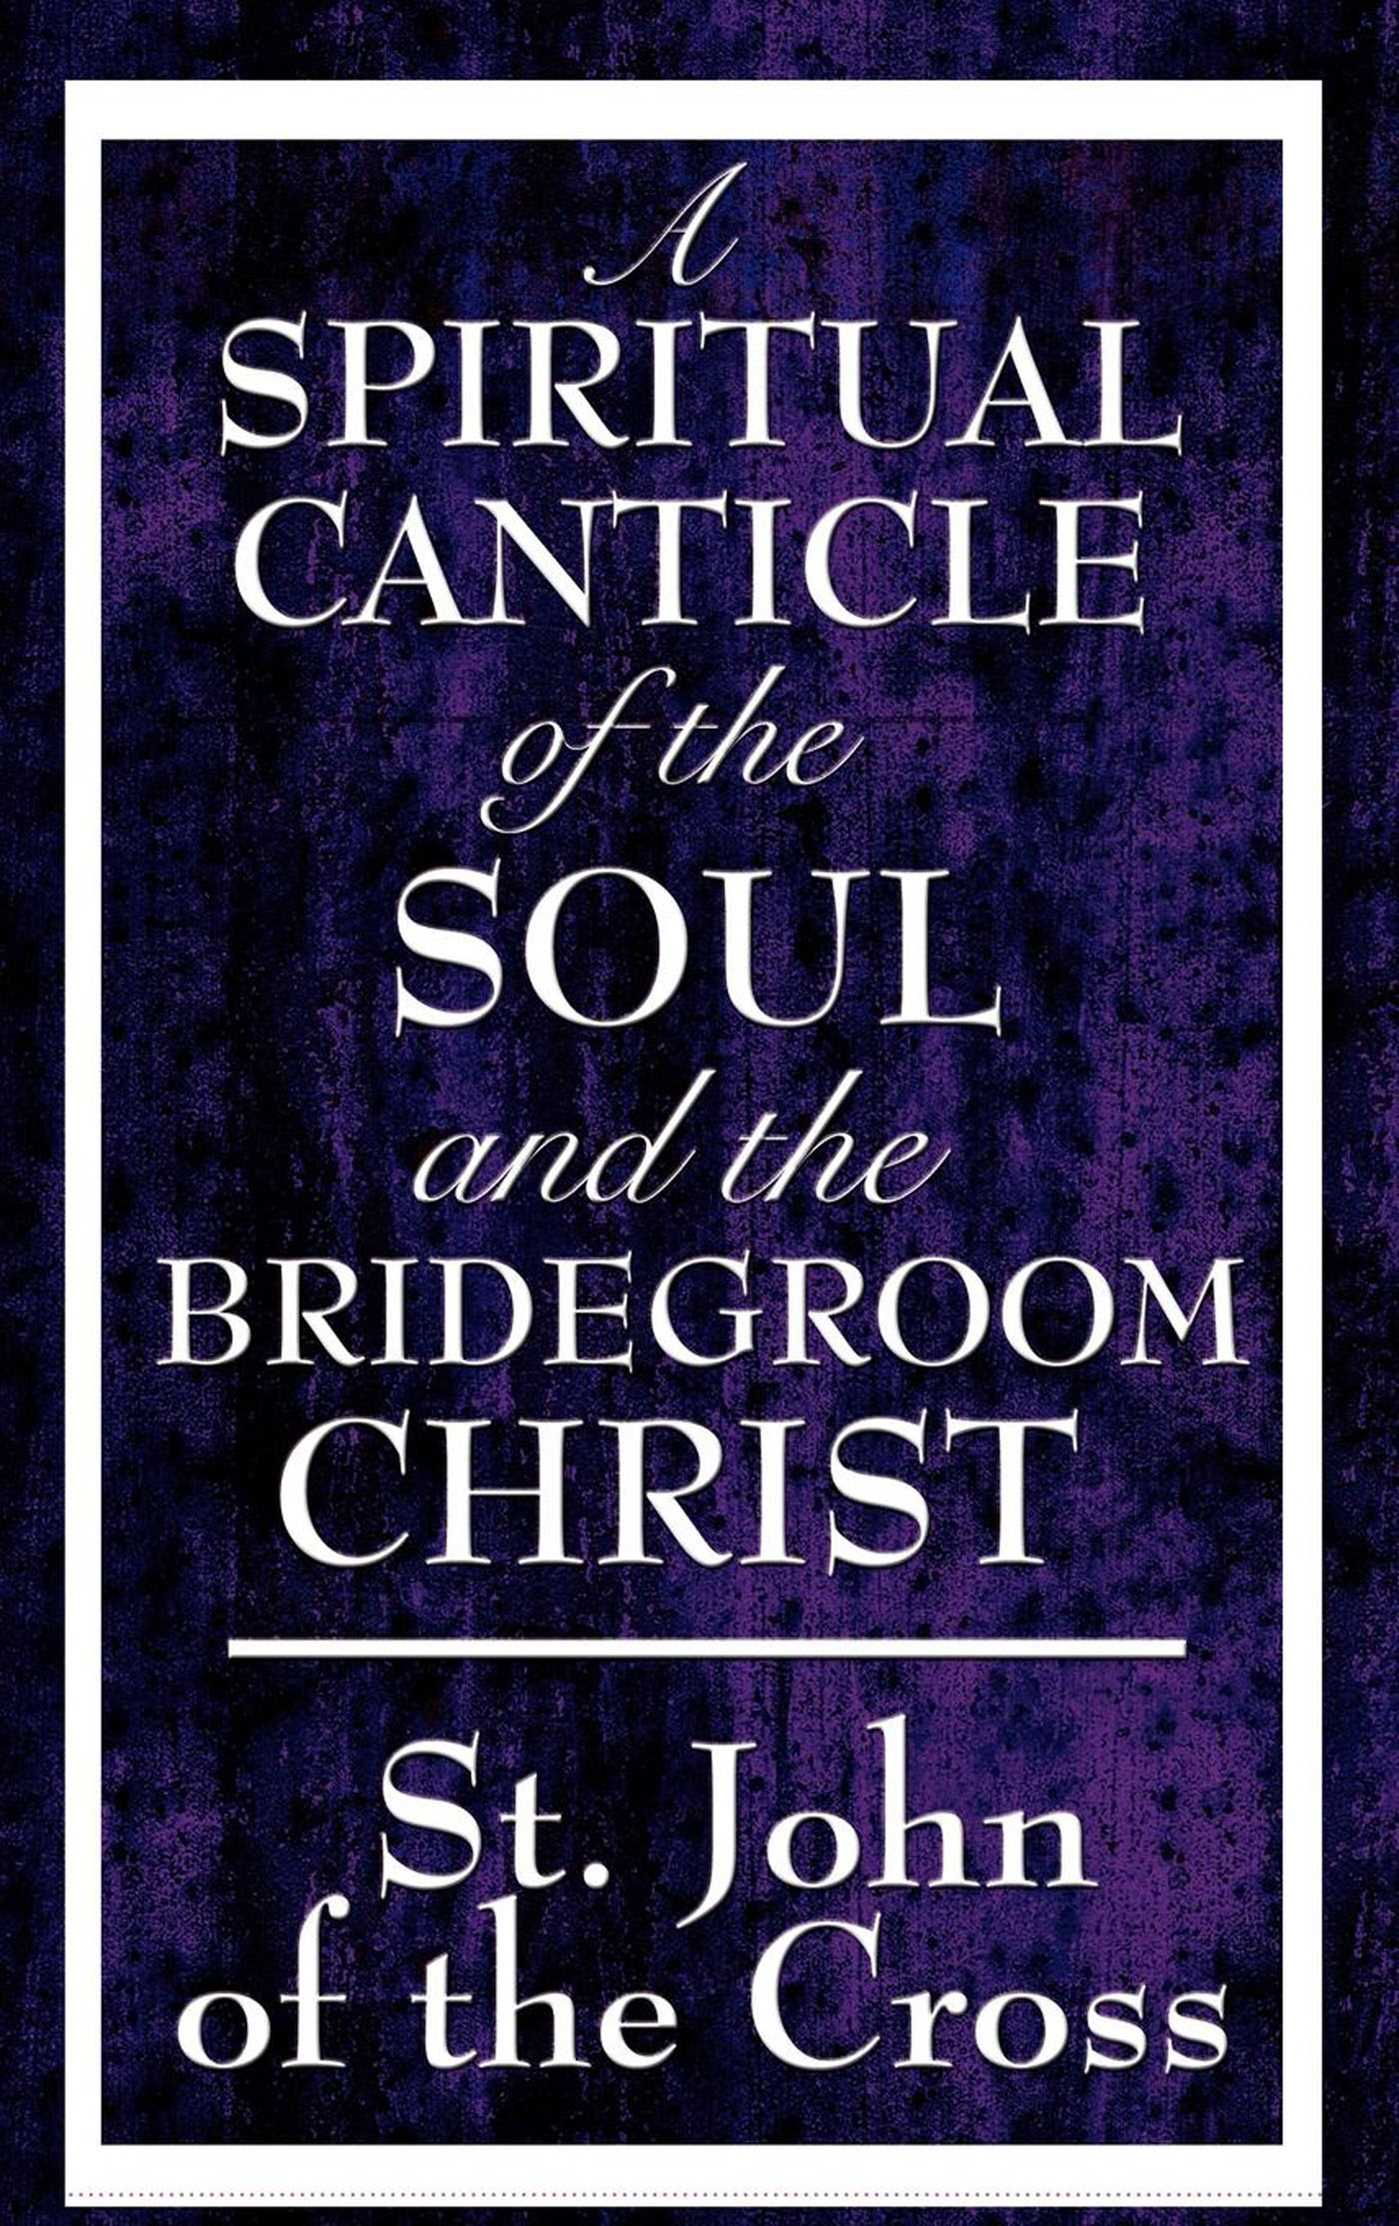 A spiritual canticle of the soul and the bridegroom christ 9781625586025 hr